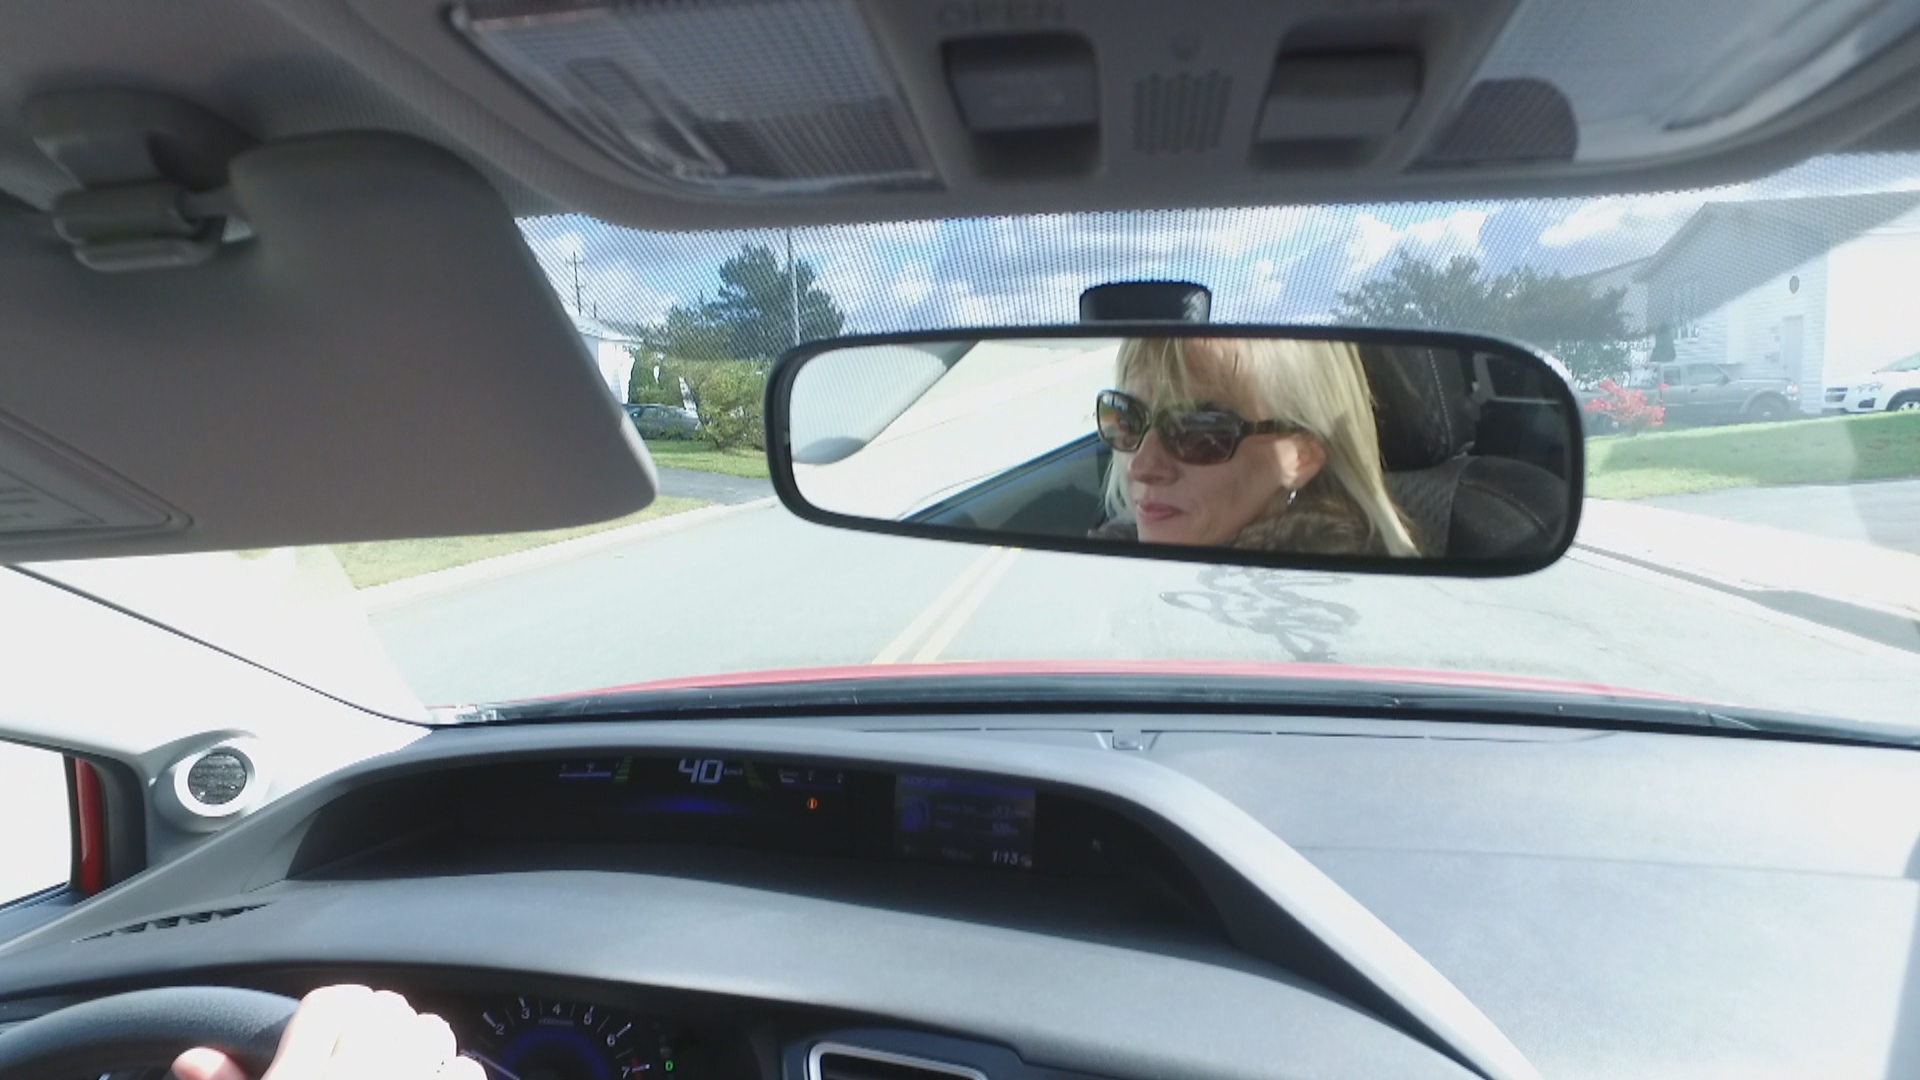 Debbie Maloney loves driving her sporty, red two-door car. (Gary Quigley/CBC)